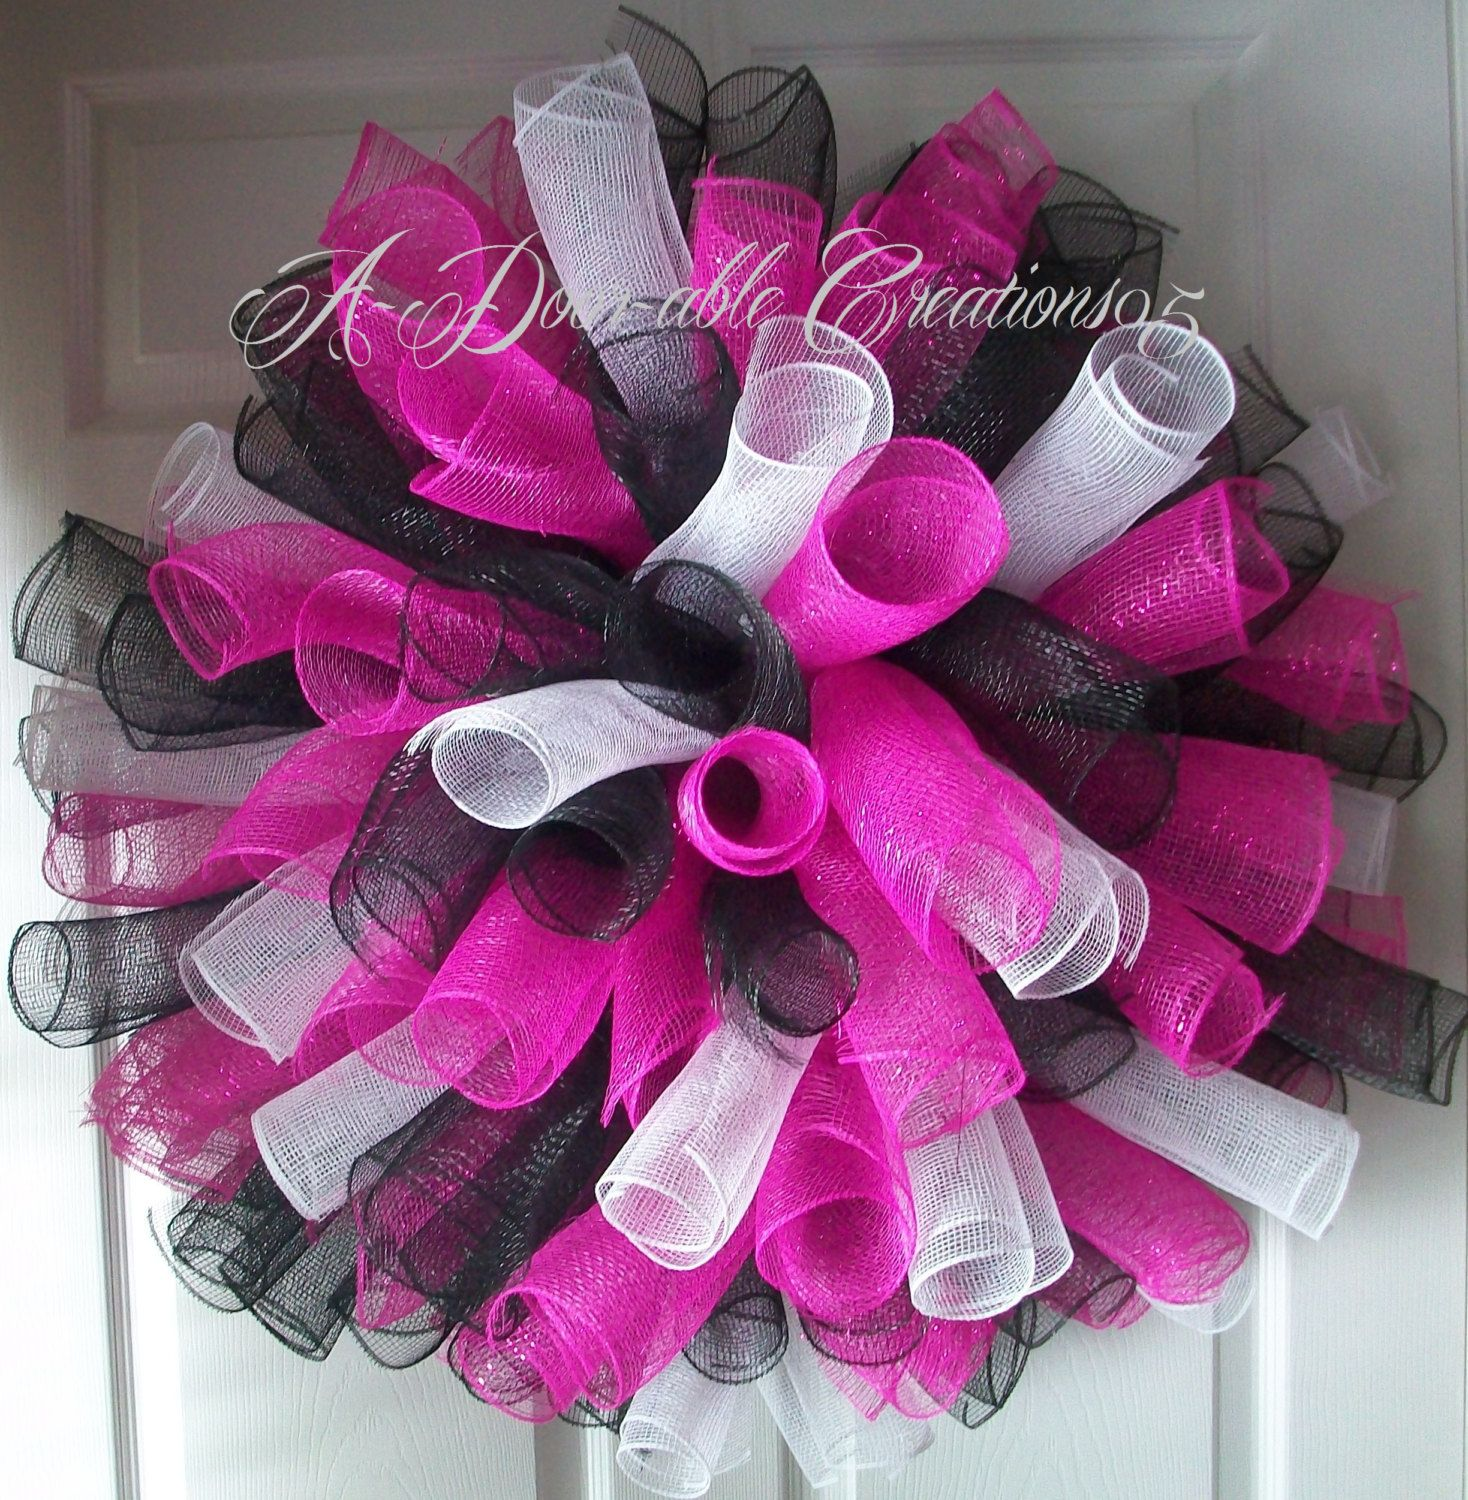 Deco Mesh Wreath Instructions Hot Pink Black Amp White